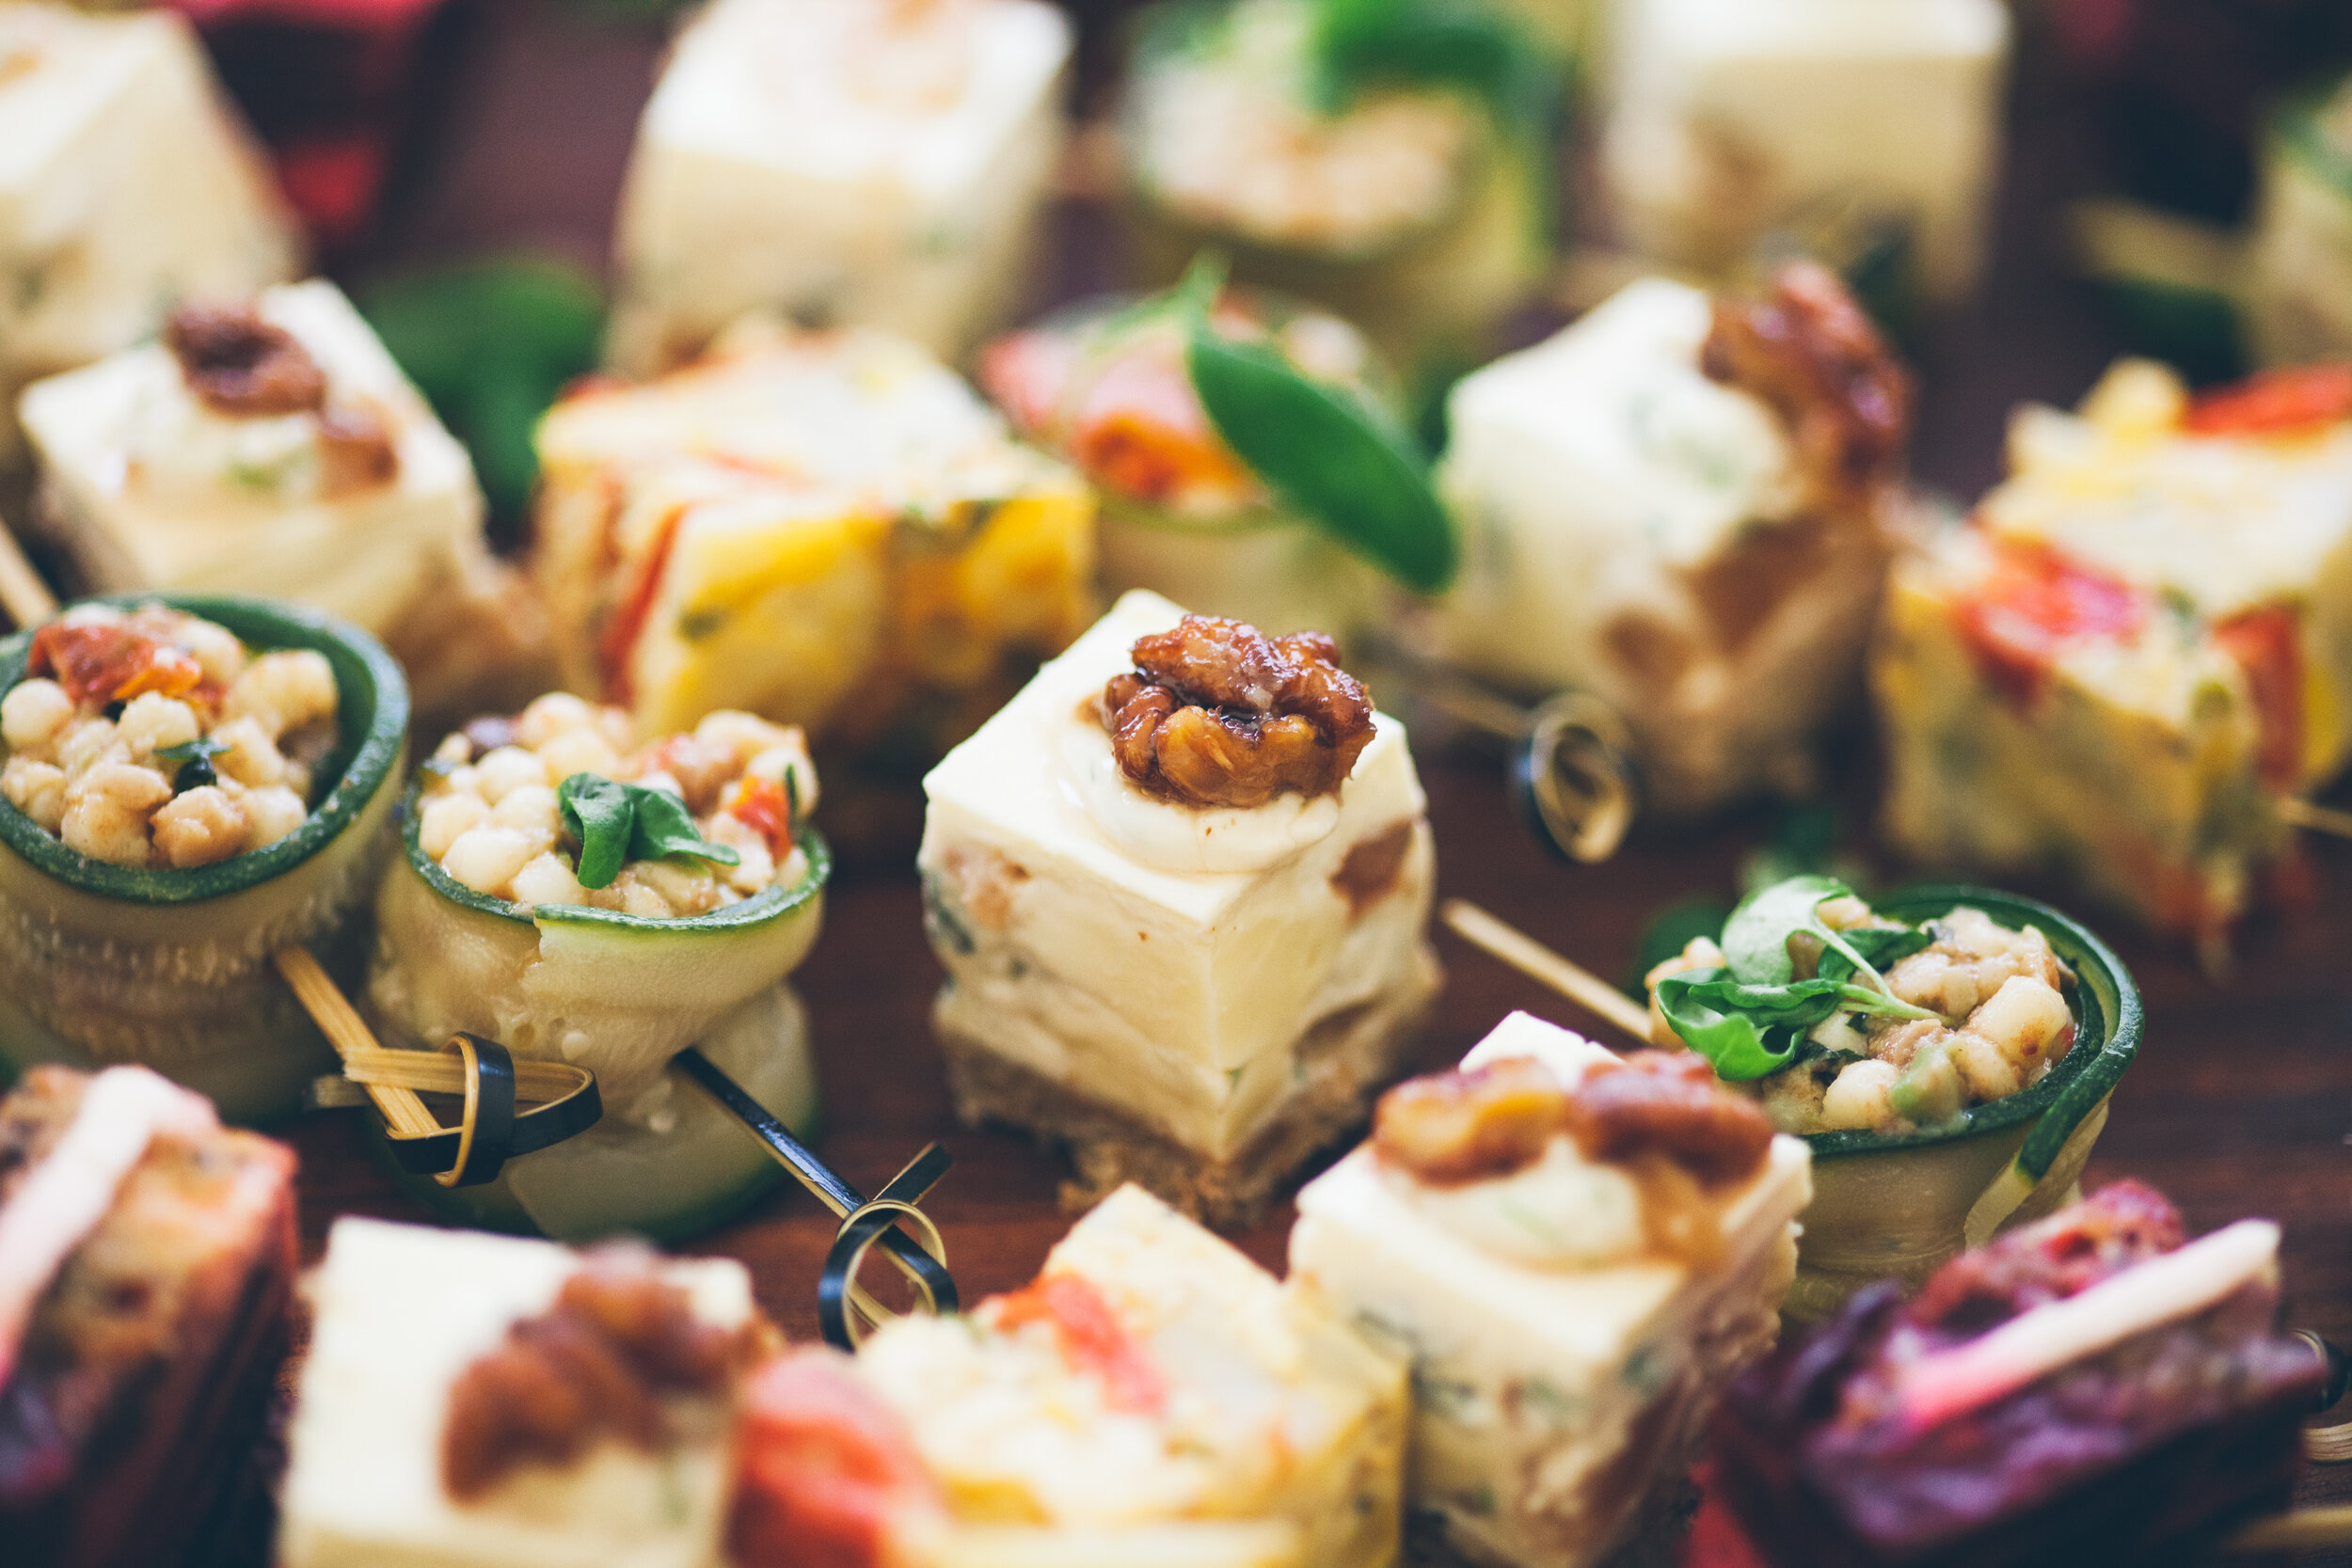 buffet-style wedding packages - Build your own wedding package with the menu below. All options include a highlight video, drone footage* and require a minimum of 6 hours.$350/hr one videographer • $400/hr two videographers • $500 speeches and significant moments edited in HD video • $500 engagement or family video • $1250 same-day edit